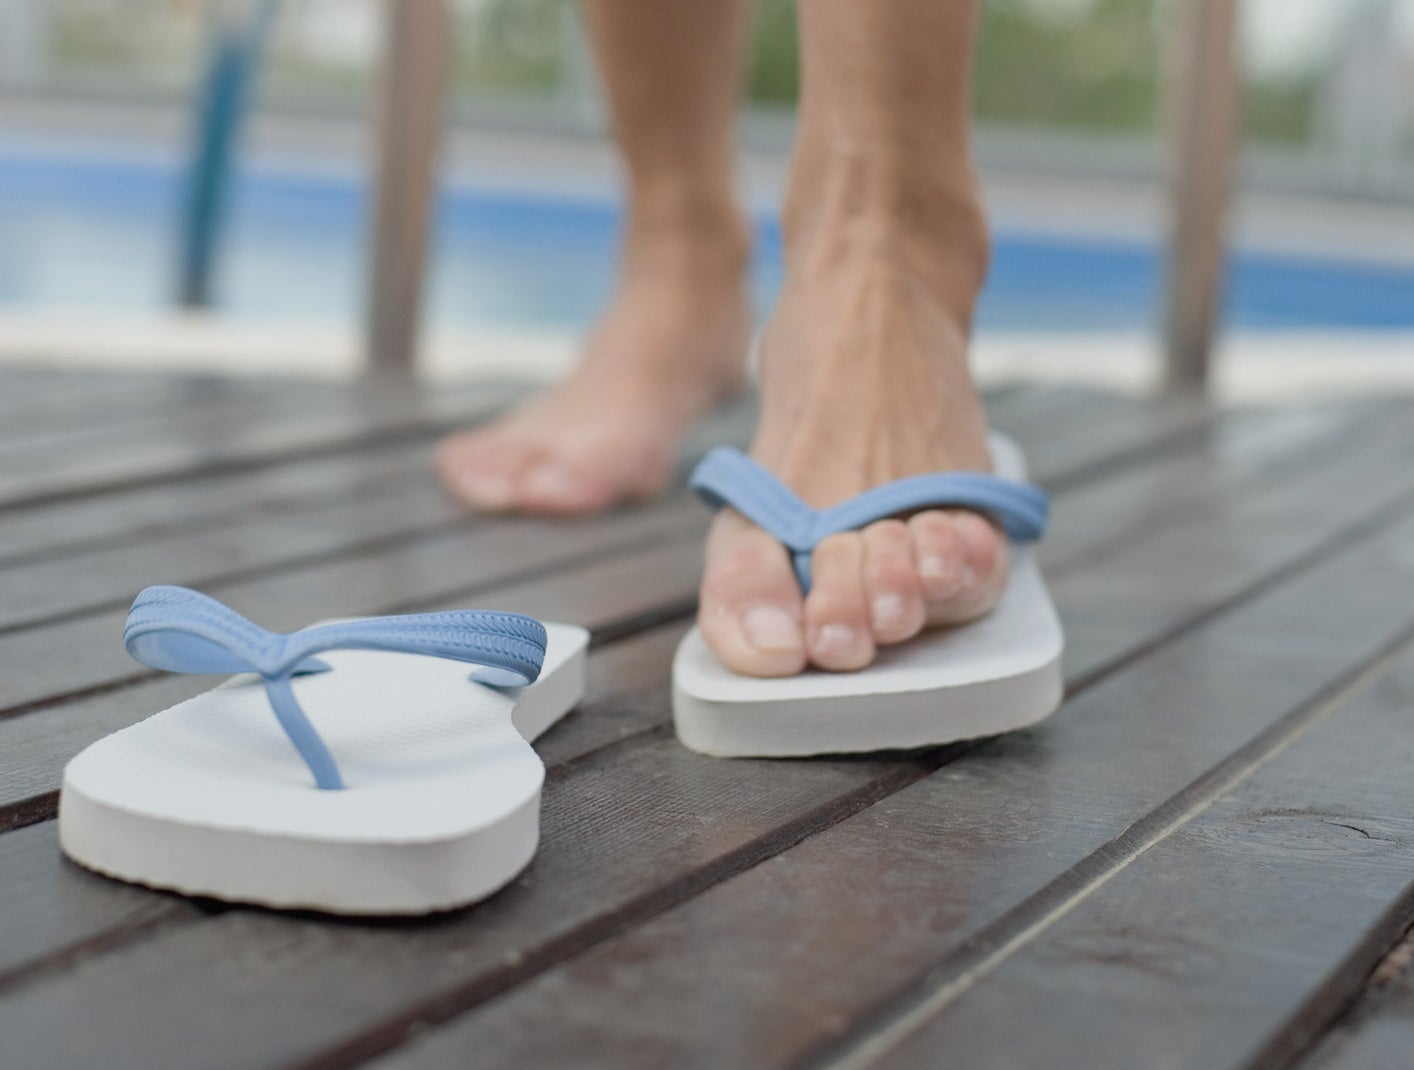 Someone stepping out of the pool, wearing one flip-flop